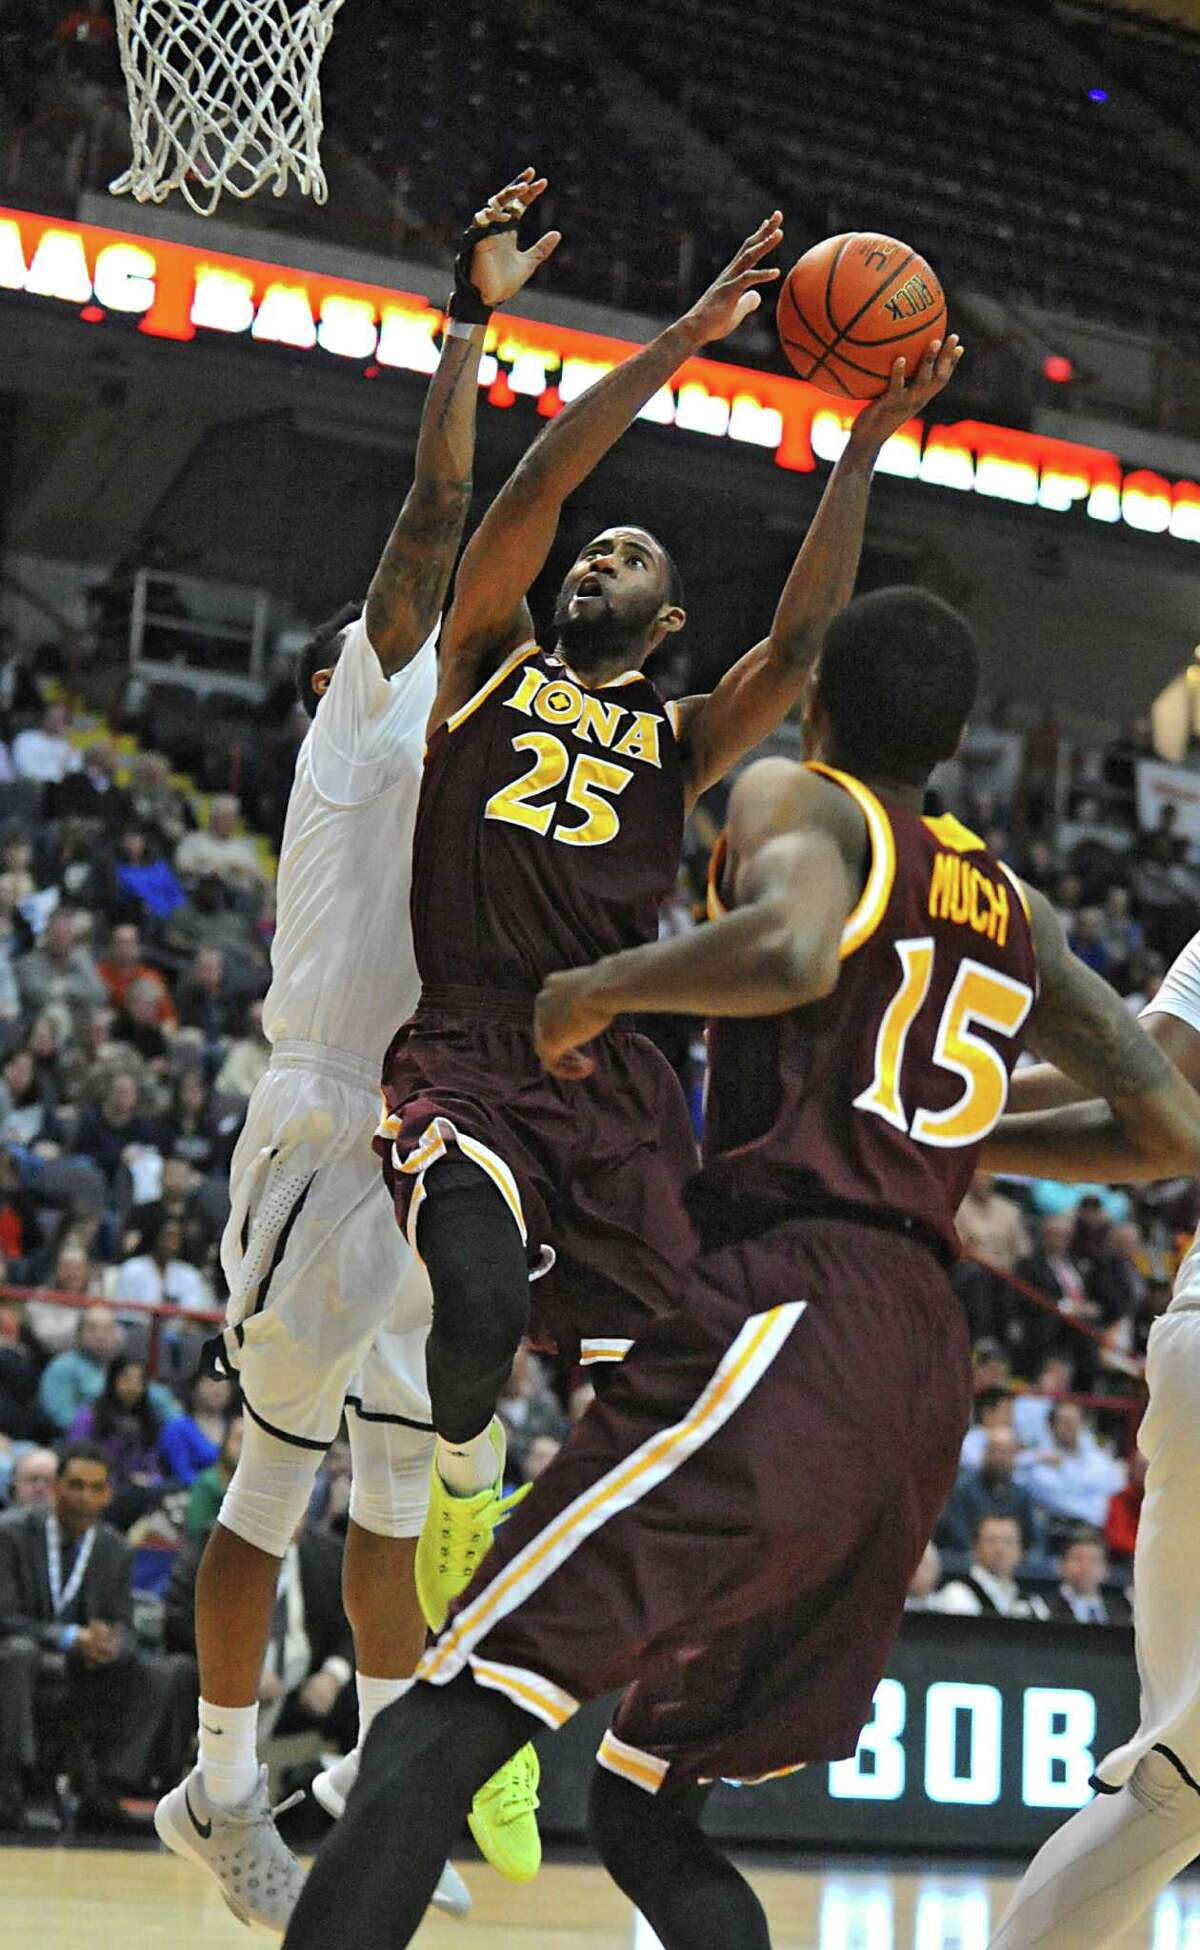 Iona's Aaron Rountree drives to the basket against Monmouth during the MAAC men's championship game at the Times Union Center on Monday, March 7, 2016 in Albany, N.Y.